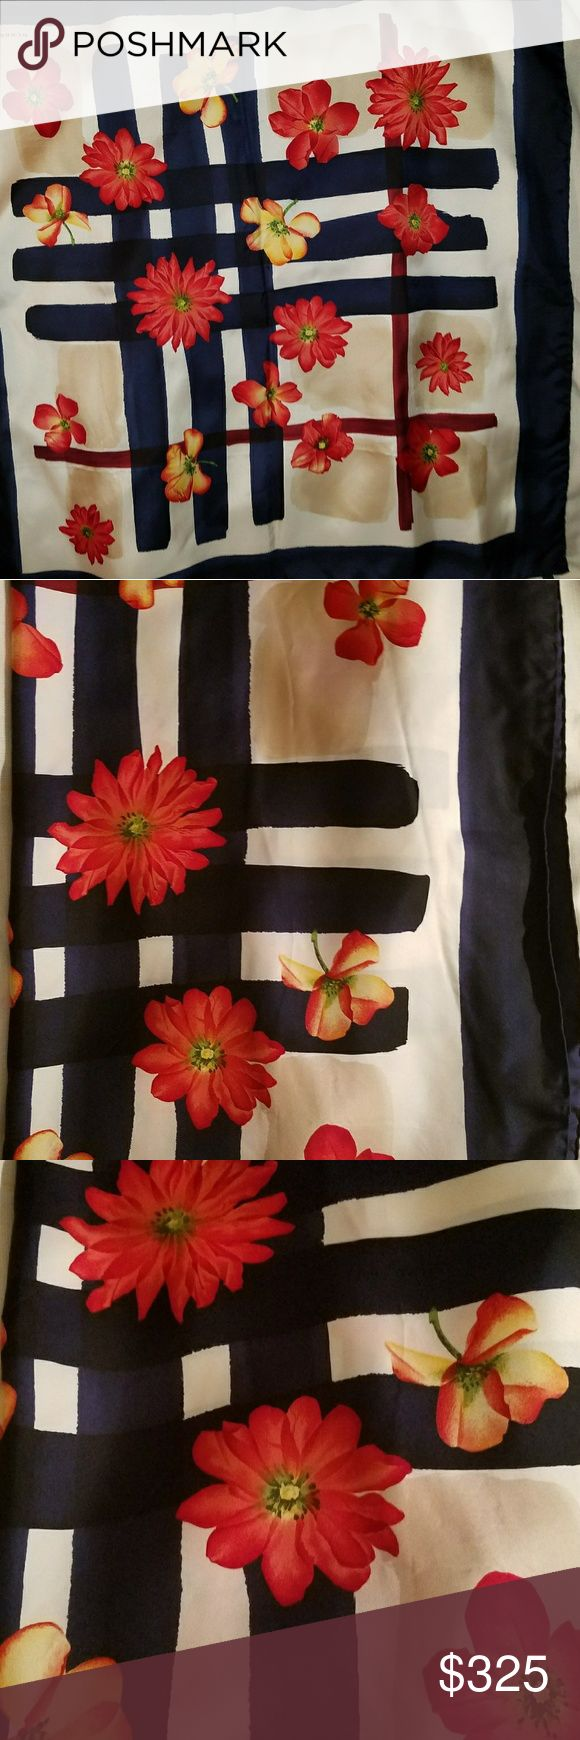 New Burberry Floral large silk scarf, 40 x 40 Check out this hard to find Burberry Silk Scarf. The brilliant red flowers against the navy trim makes a very classic and chic statement. The scarf is new without tags and was made in Italy. Please ask questions. Remember scarves are the 2018 go to accessory. Burberry Accessories Scarves & Wraps